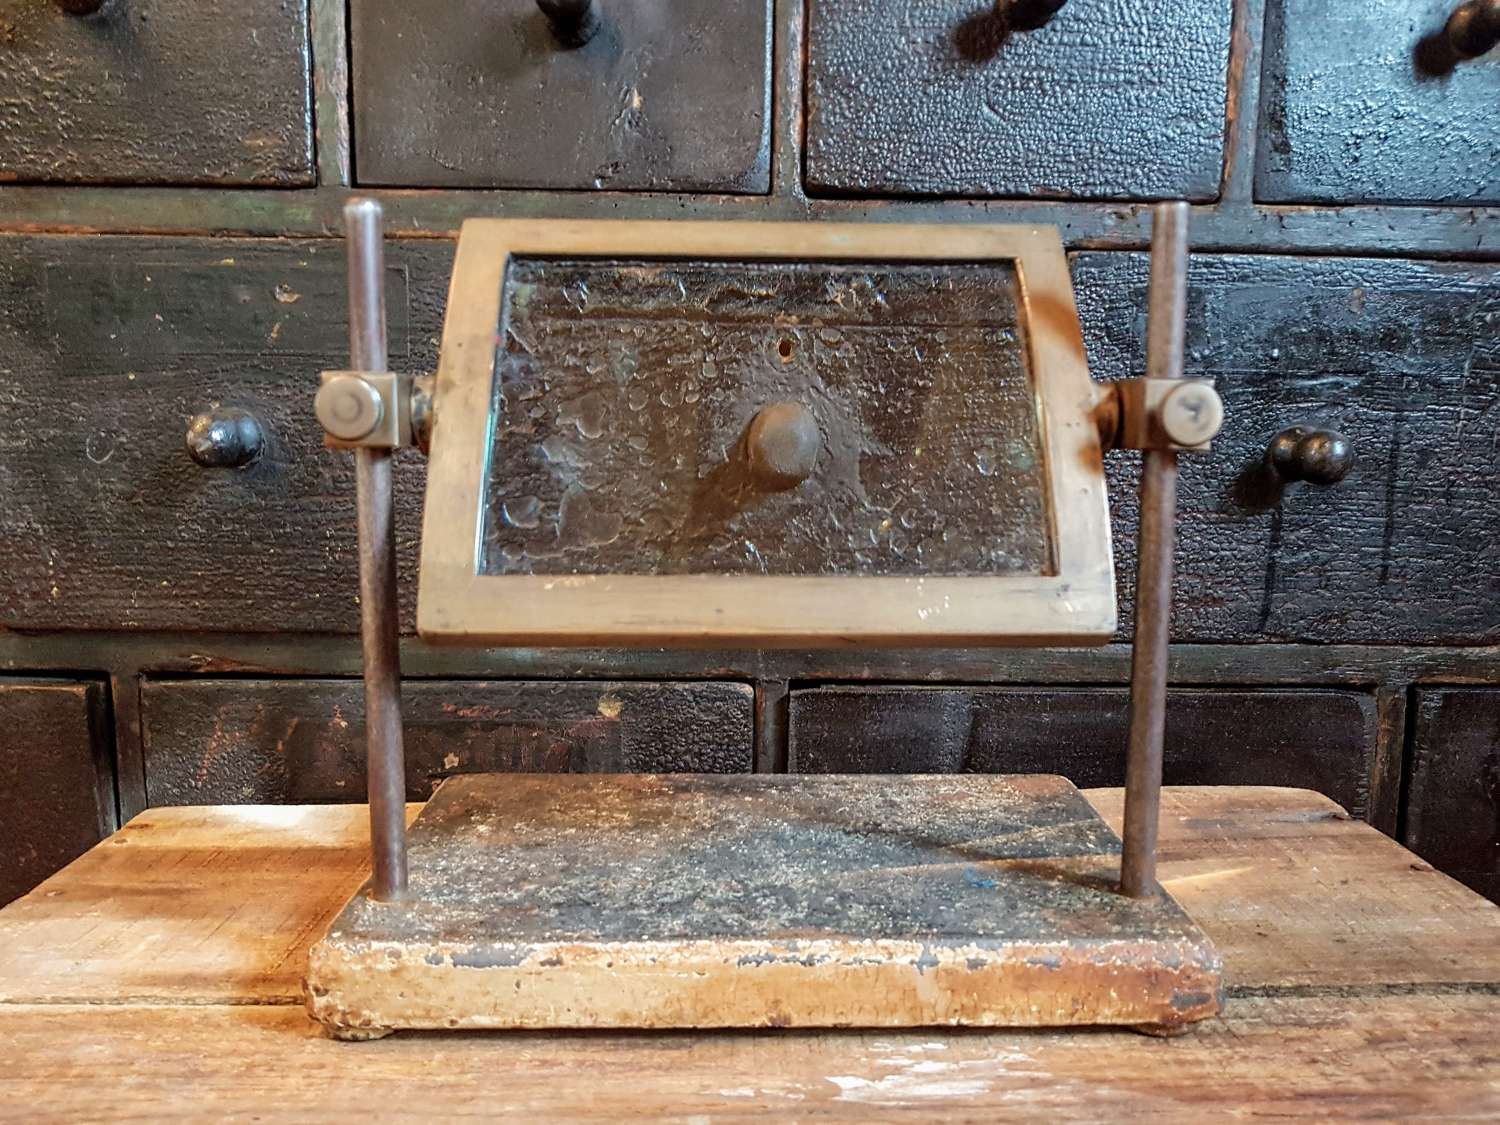 Early 20th century Jewellers magnifier lense